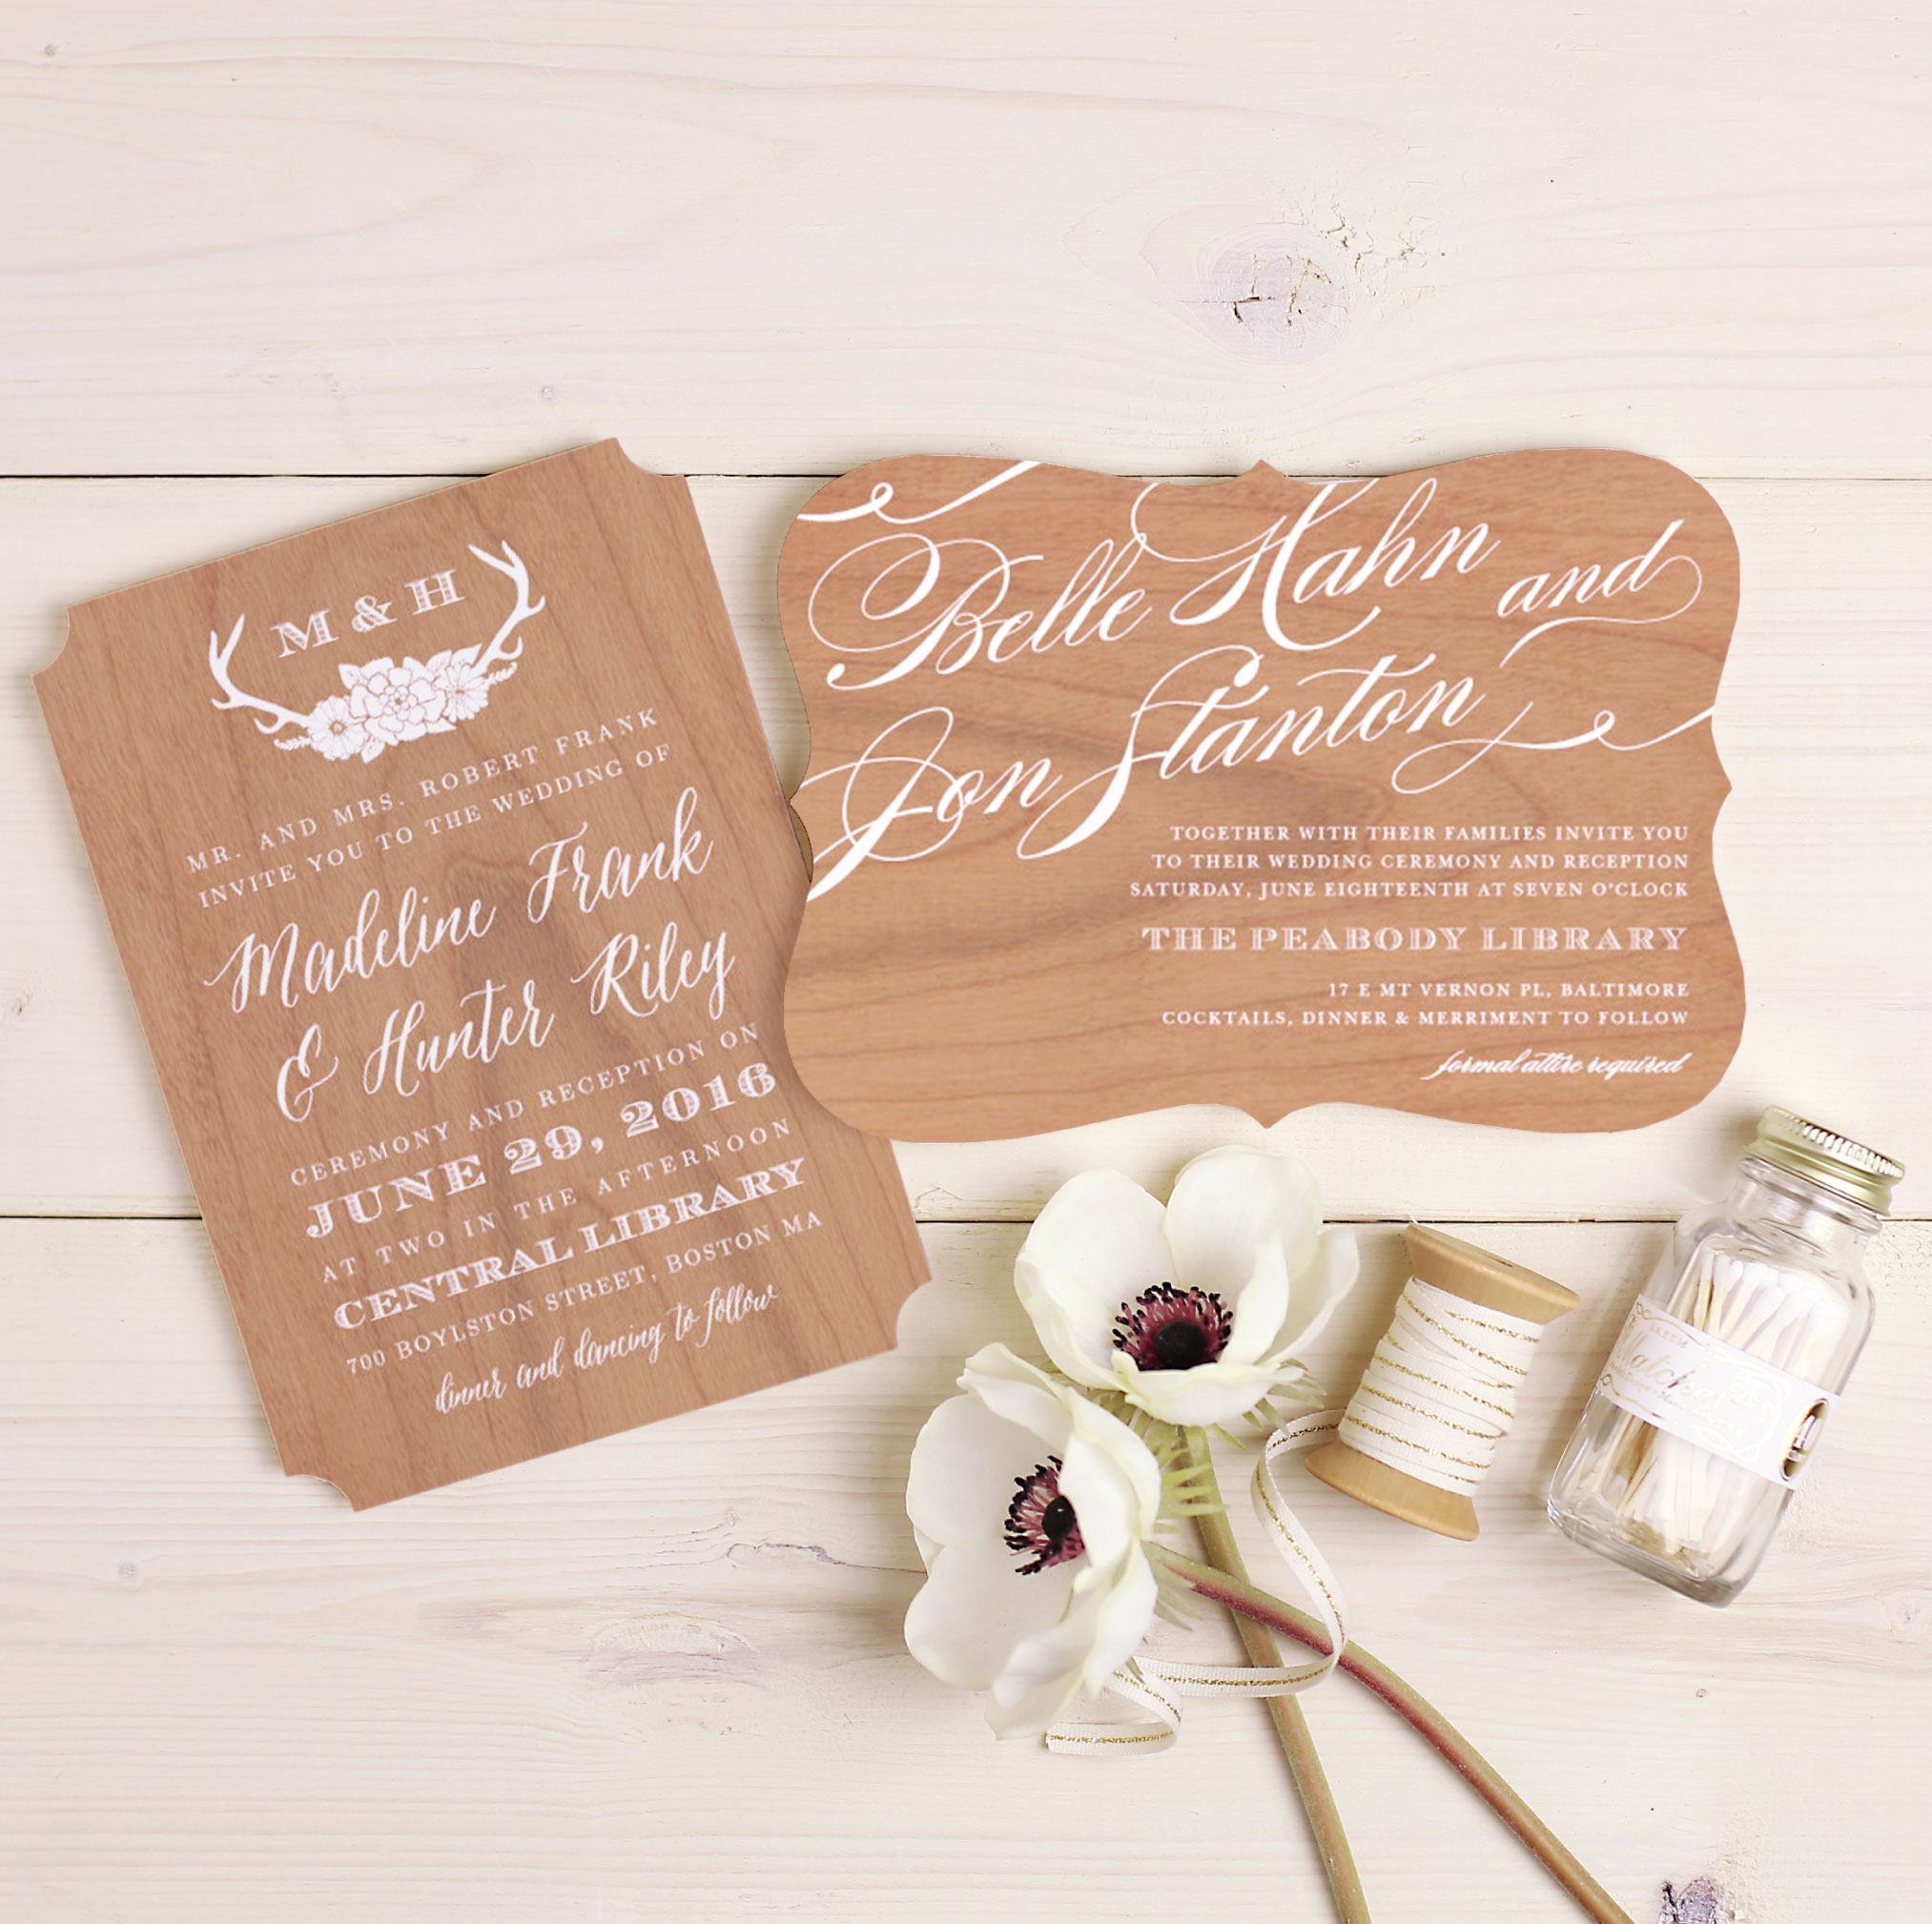 Design Your Own Wedding Invite: Create Your Own Rustic Barn Wedding Invitations